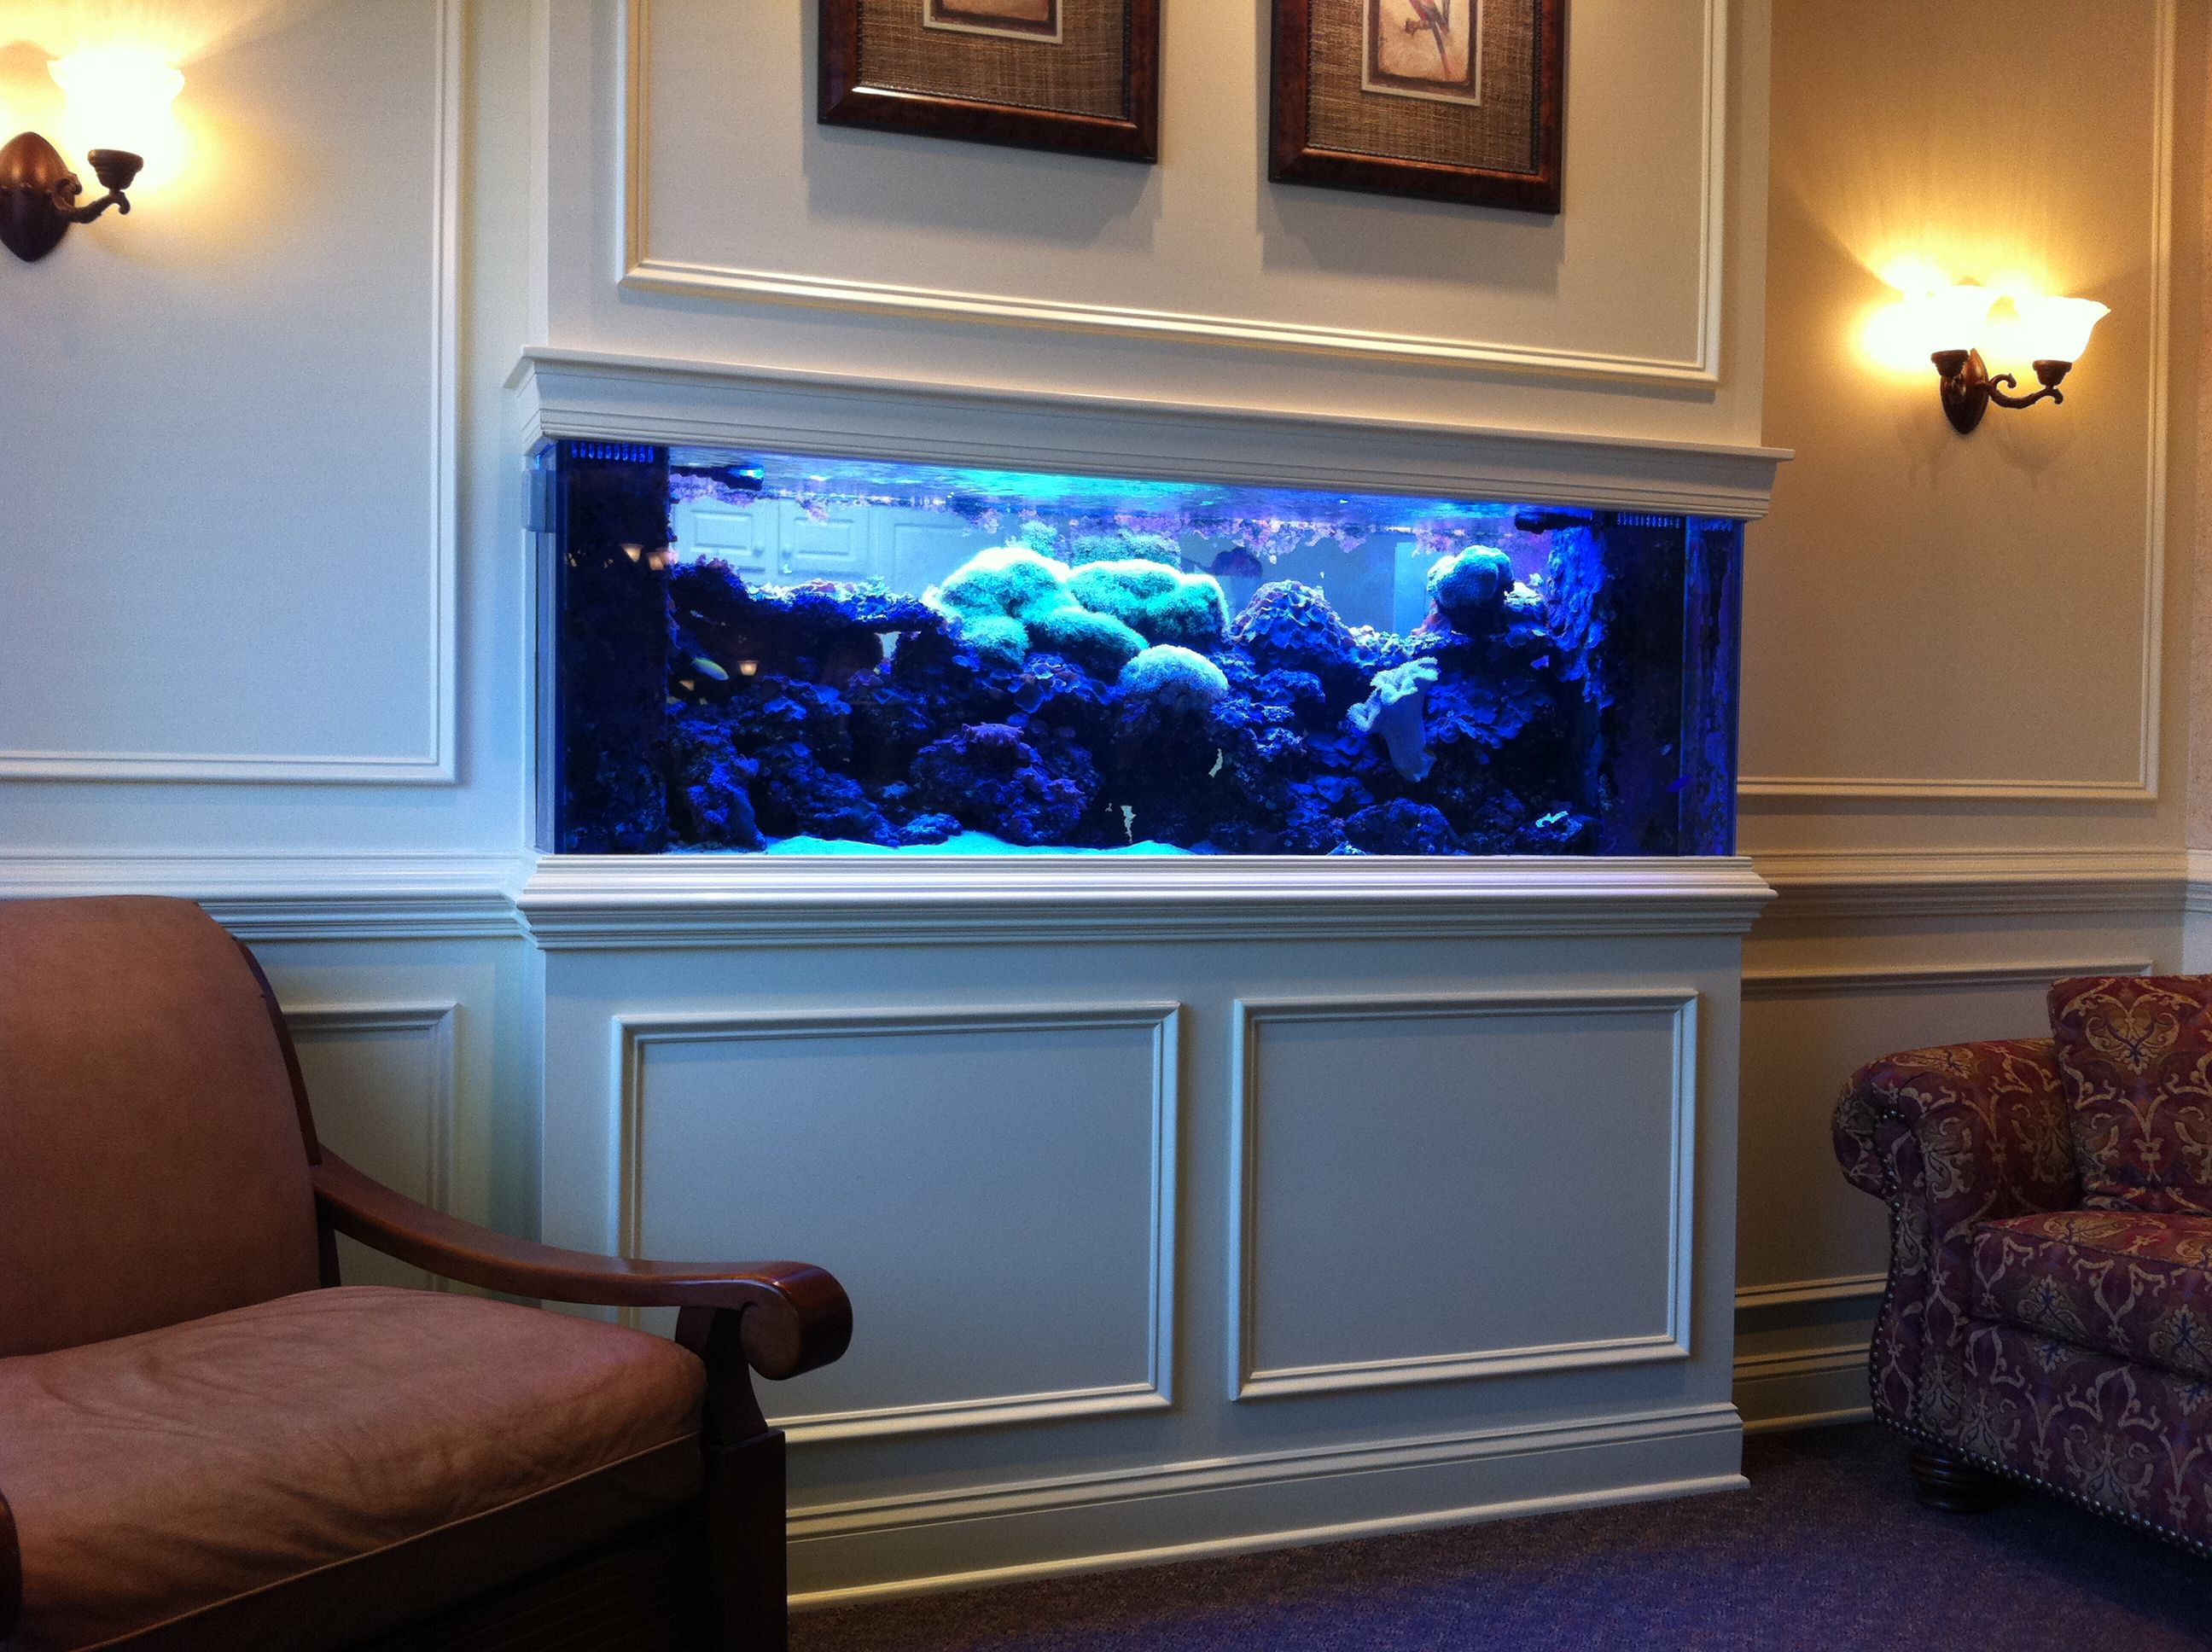 Saltwater aquarium fish google search ideas for the for Fish tank built into wall